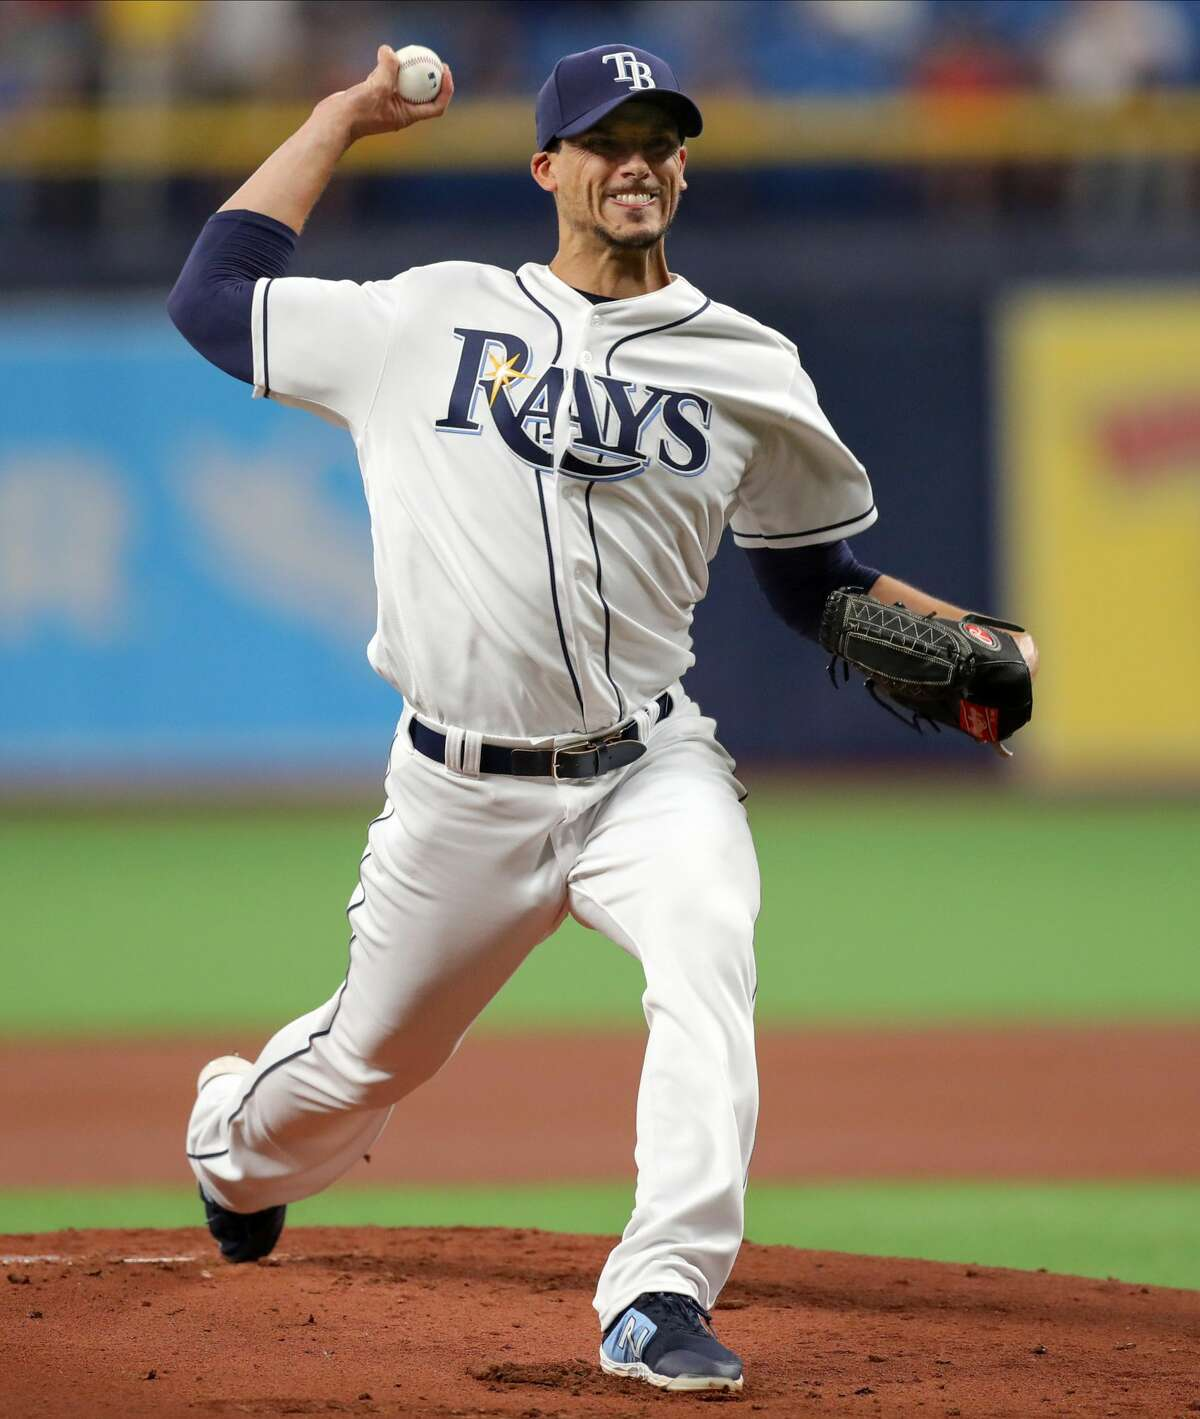 March 29: Rays 4, Astros 2 Record: 1-1 Houston Chronicle's Player of the Game Charlie Morton W/ 5 IP/ 3 hits/ 2 ER/ 8 Ks/ 2 BBs Picked up a victory after facing his former team for the first time.